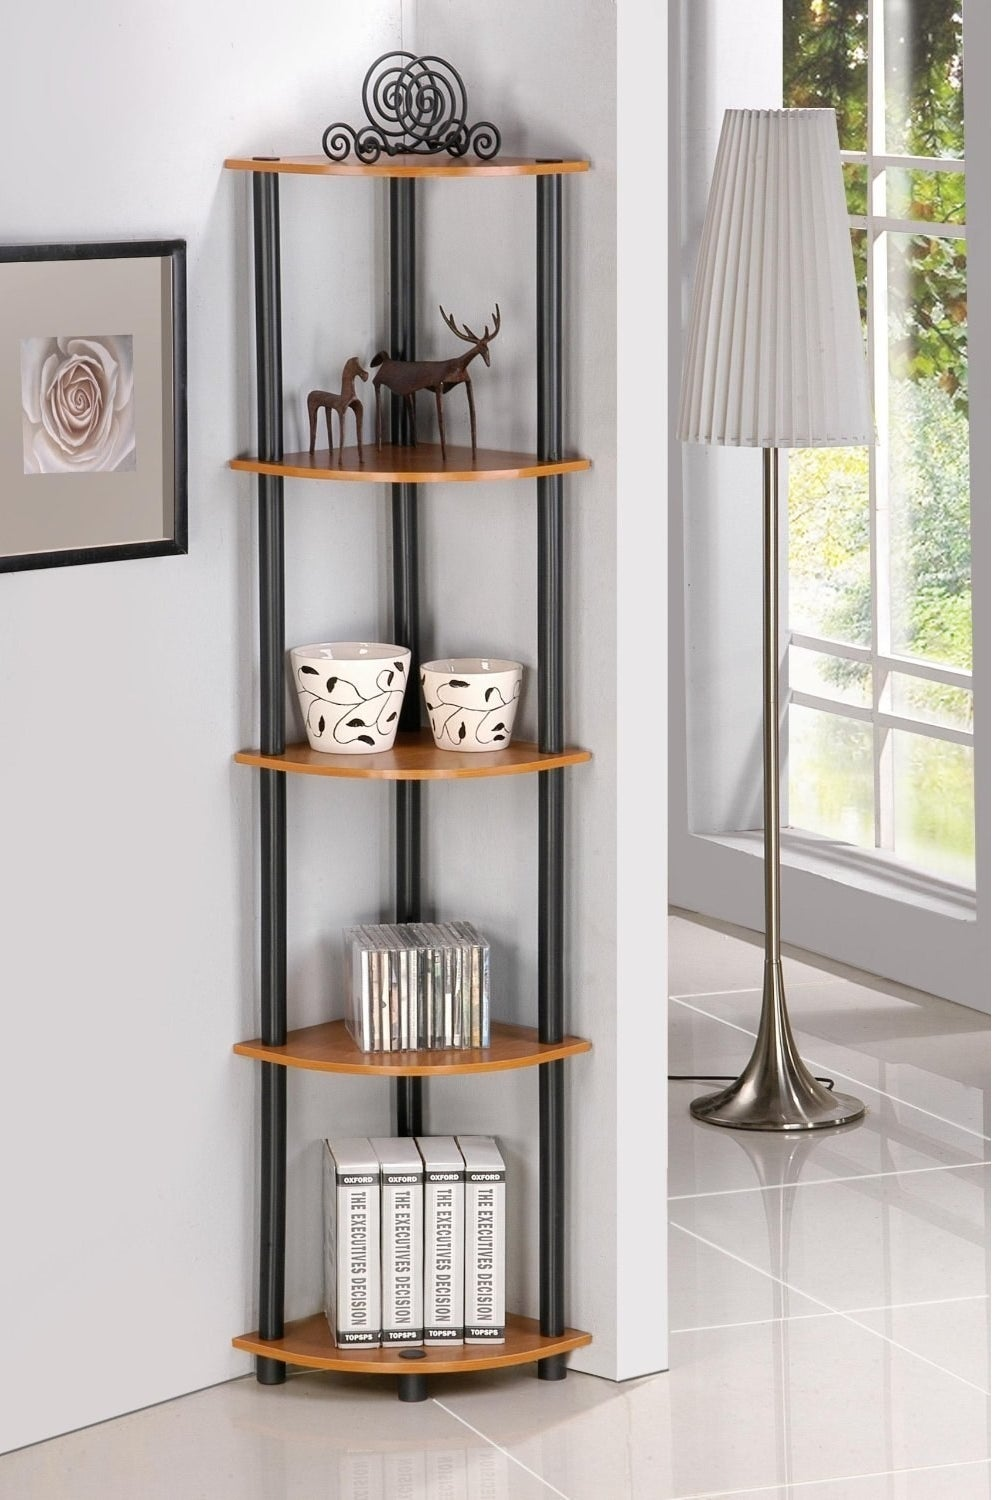 The shelf with five brown shelves and black tubes connecting them in the corner of the room with trinkets on it